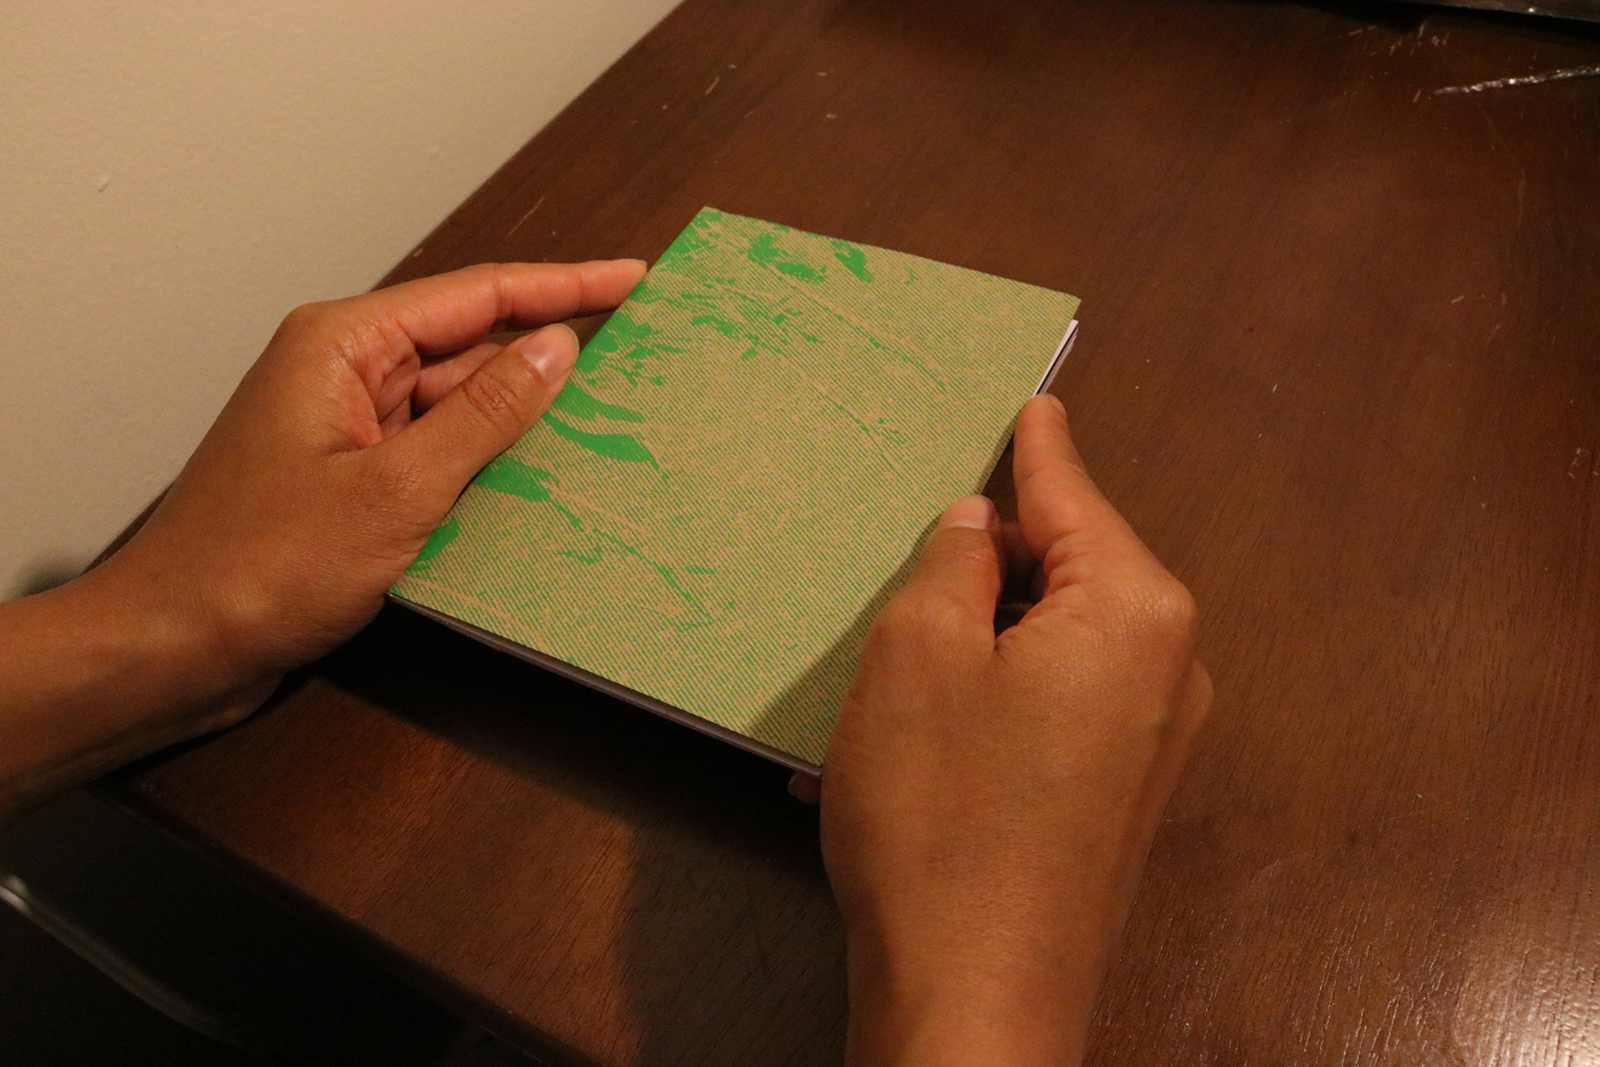 The front cover of Restoration. The image is of vines on asphalt in green ink screen printed on brown paper.